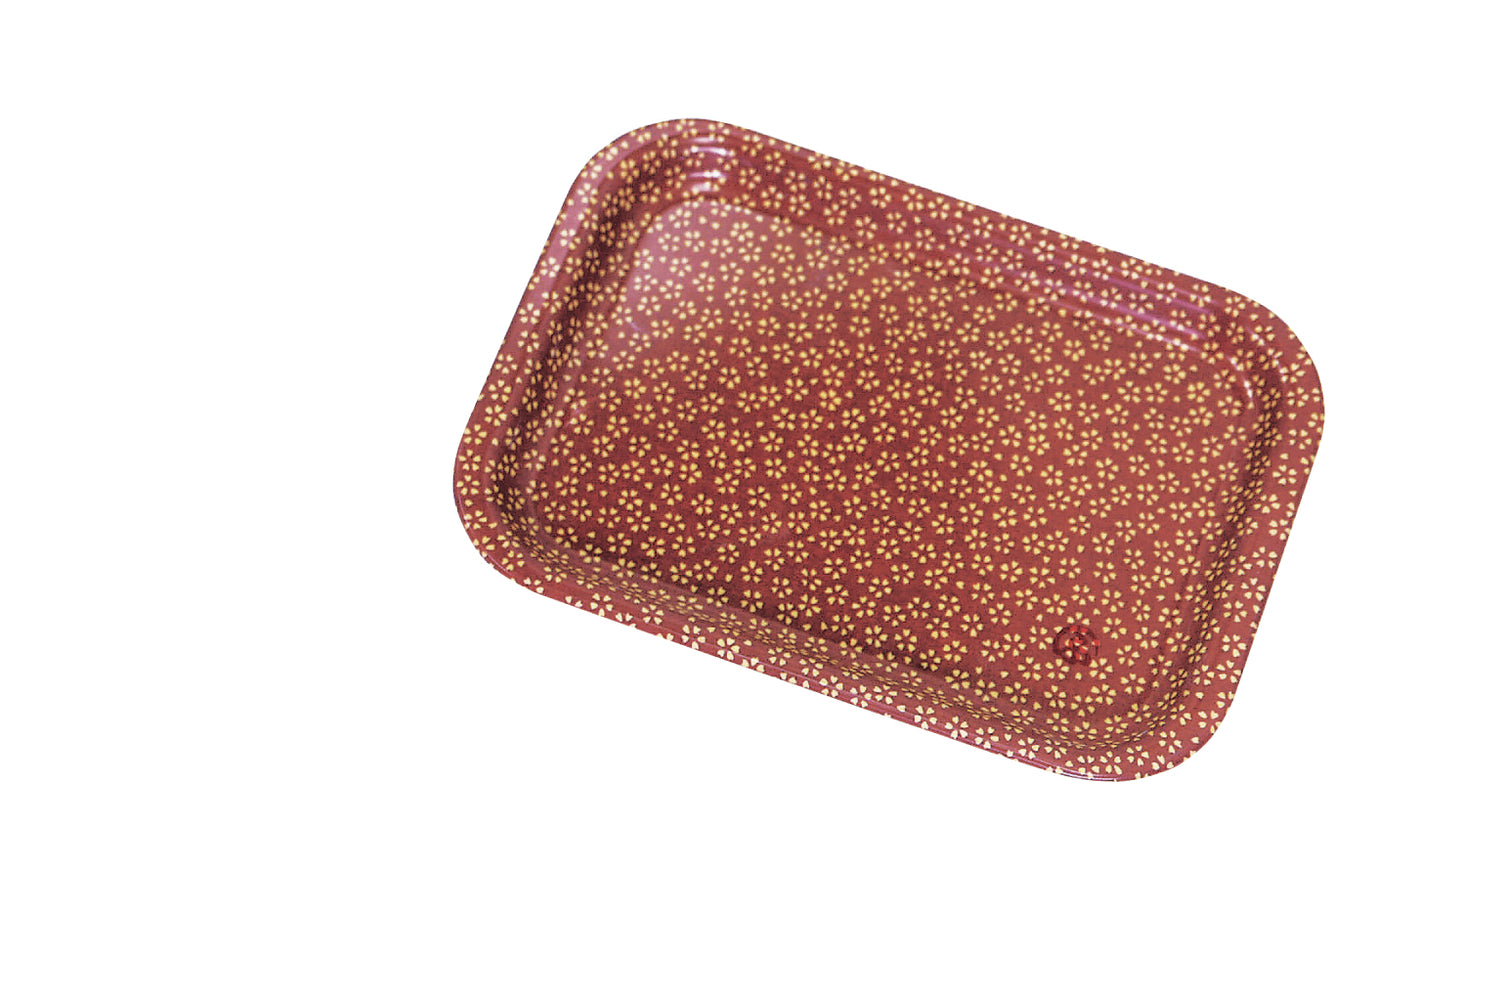 Wafu Cloth Cafe Tray | Sakura Blossom